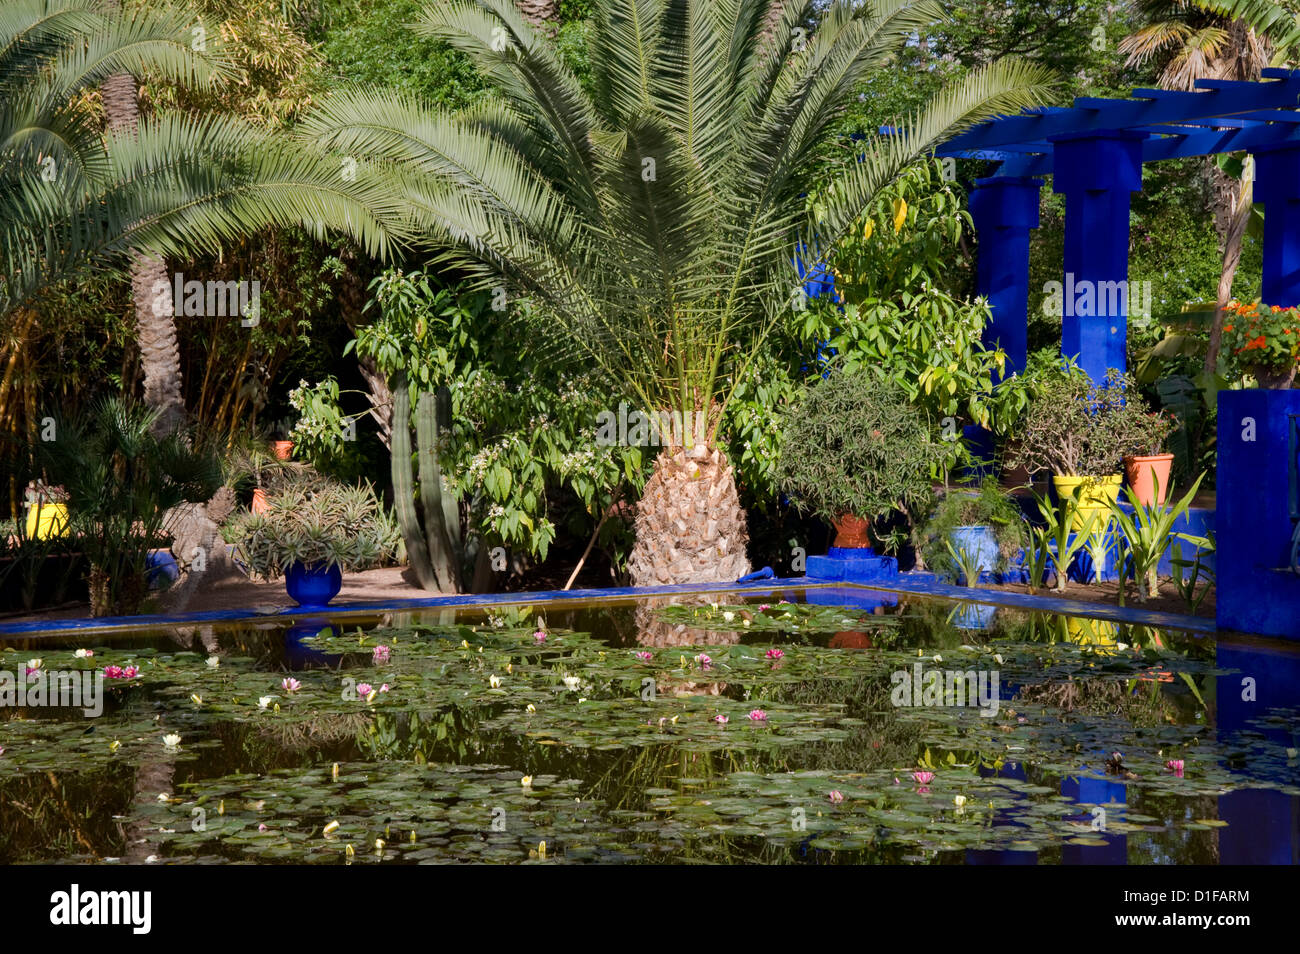 Tropical palms surrounding an pond containing water lilies at the Majorelle Garden in Marrakech, Morocco, North - Stock Image